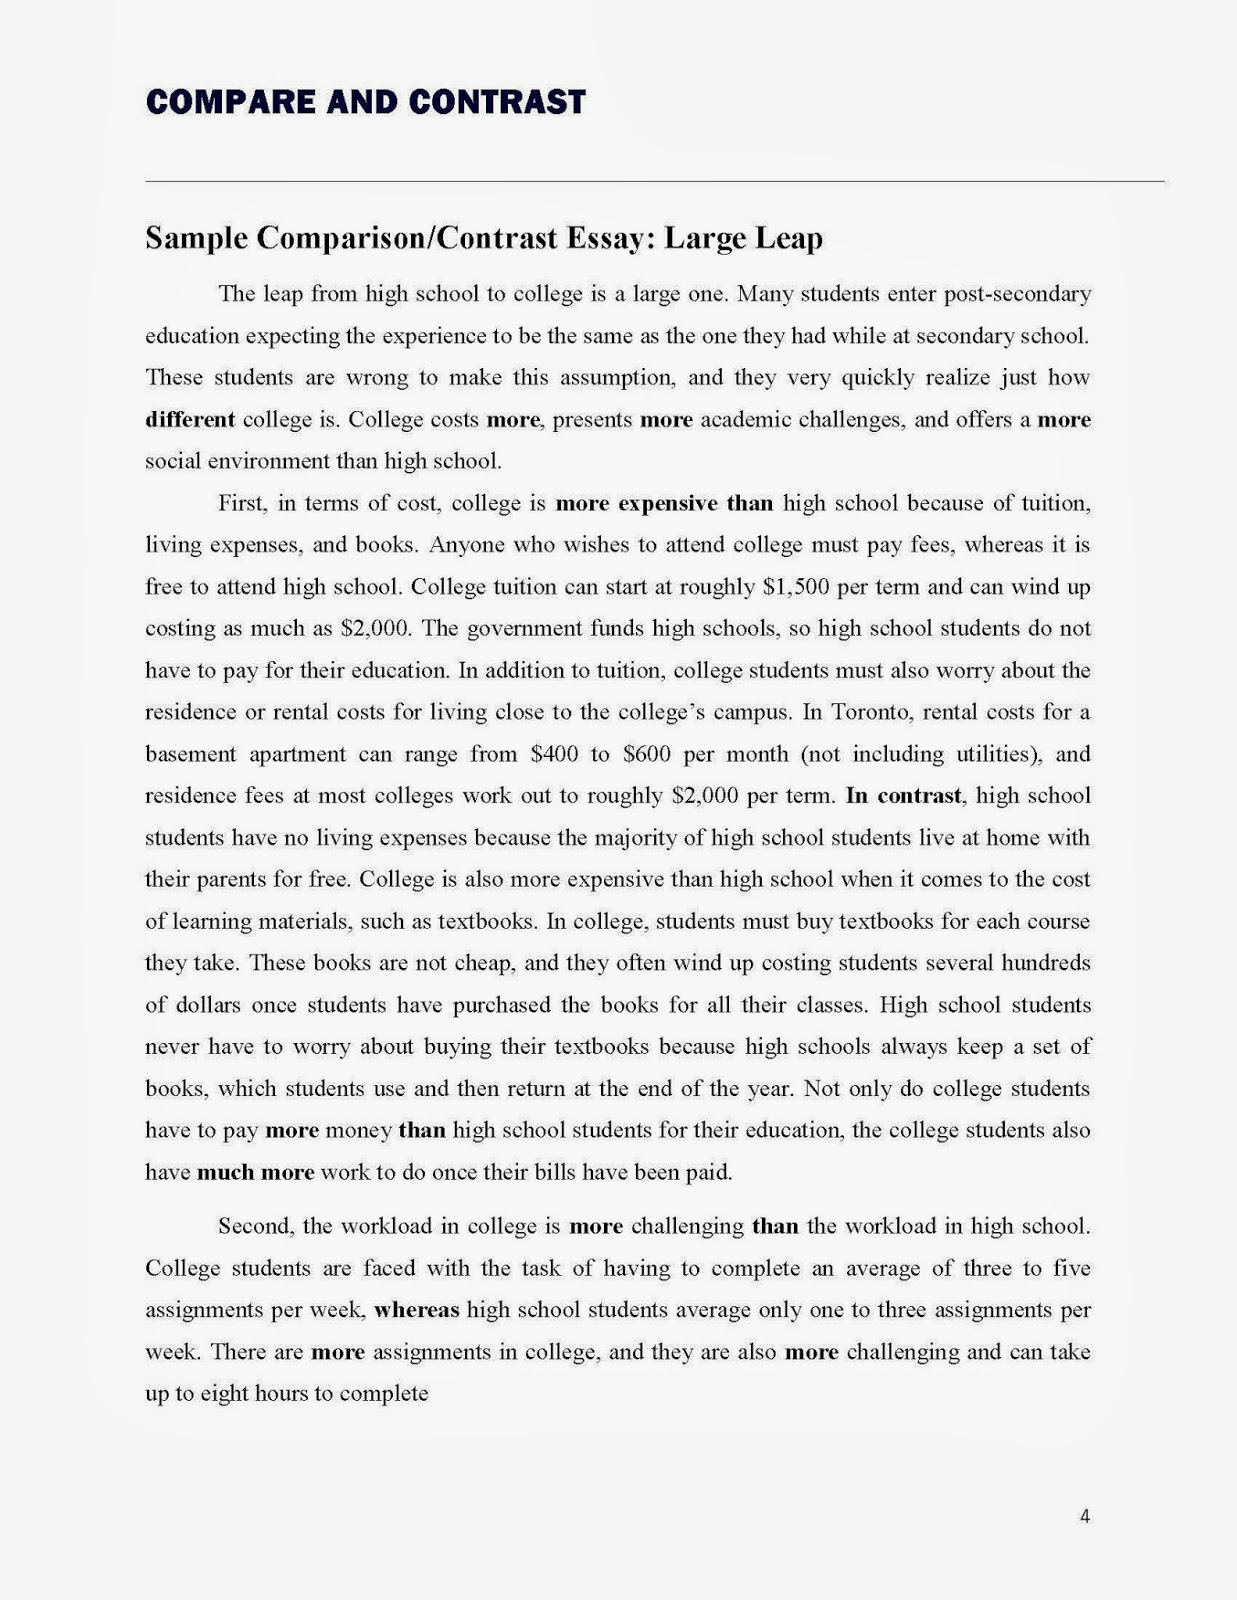 Compare and contrast essay comparing two cities